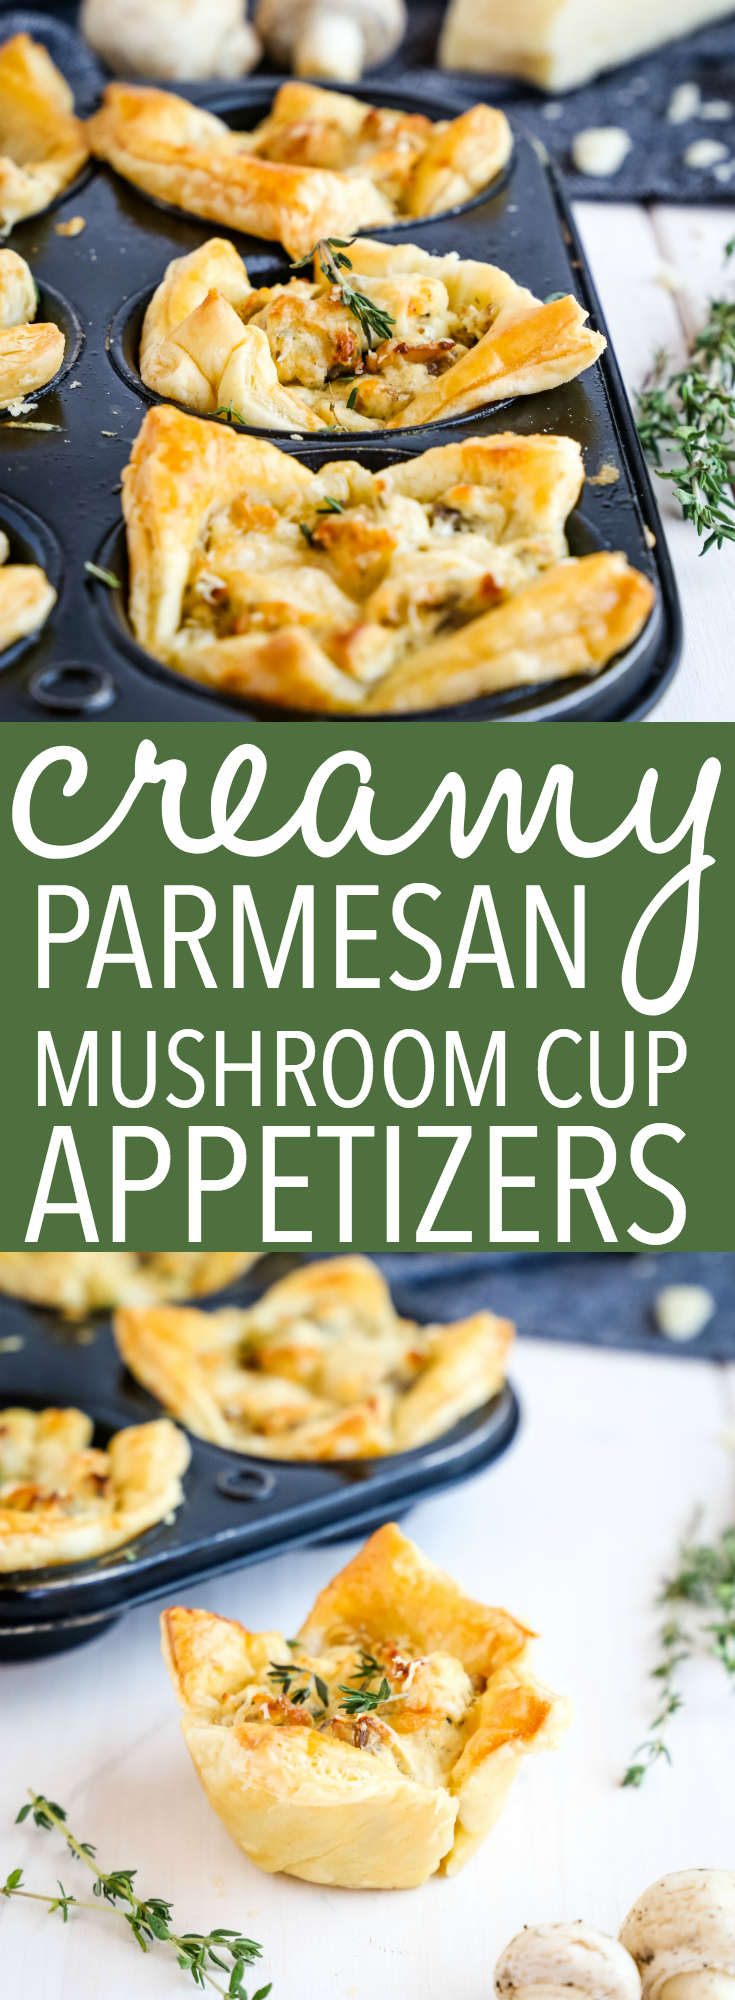 These Creamy Parmesan Mushroom Cup Appetizers are the perfect finger food for New Years Eve and holiday parties. They're easy to make and perfectly savory! Recipe from thebusybaker.ca! #appetizer #mushrooms #puffpastry #newyearseve #holiday #newyears  via @busybakerblog